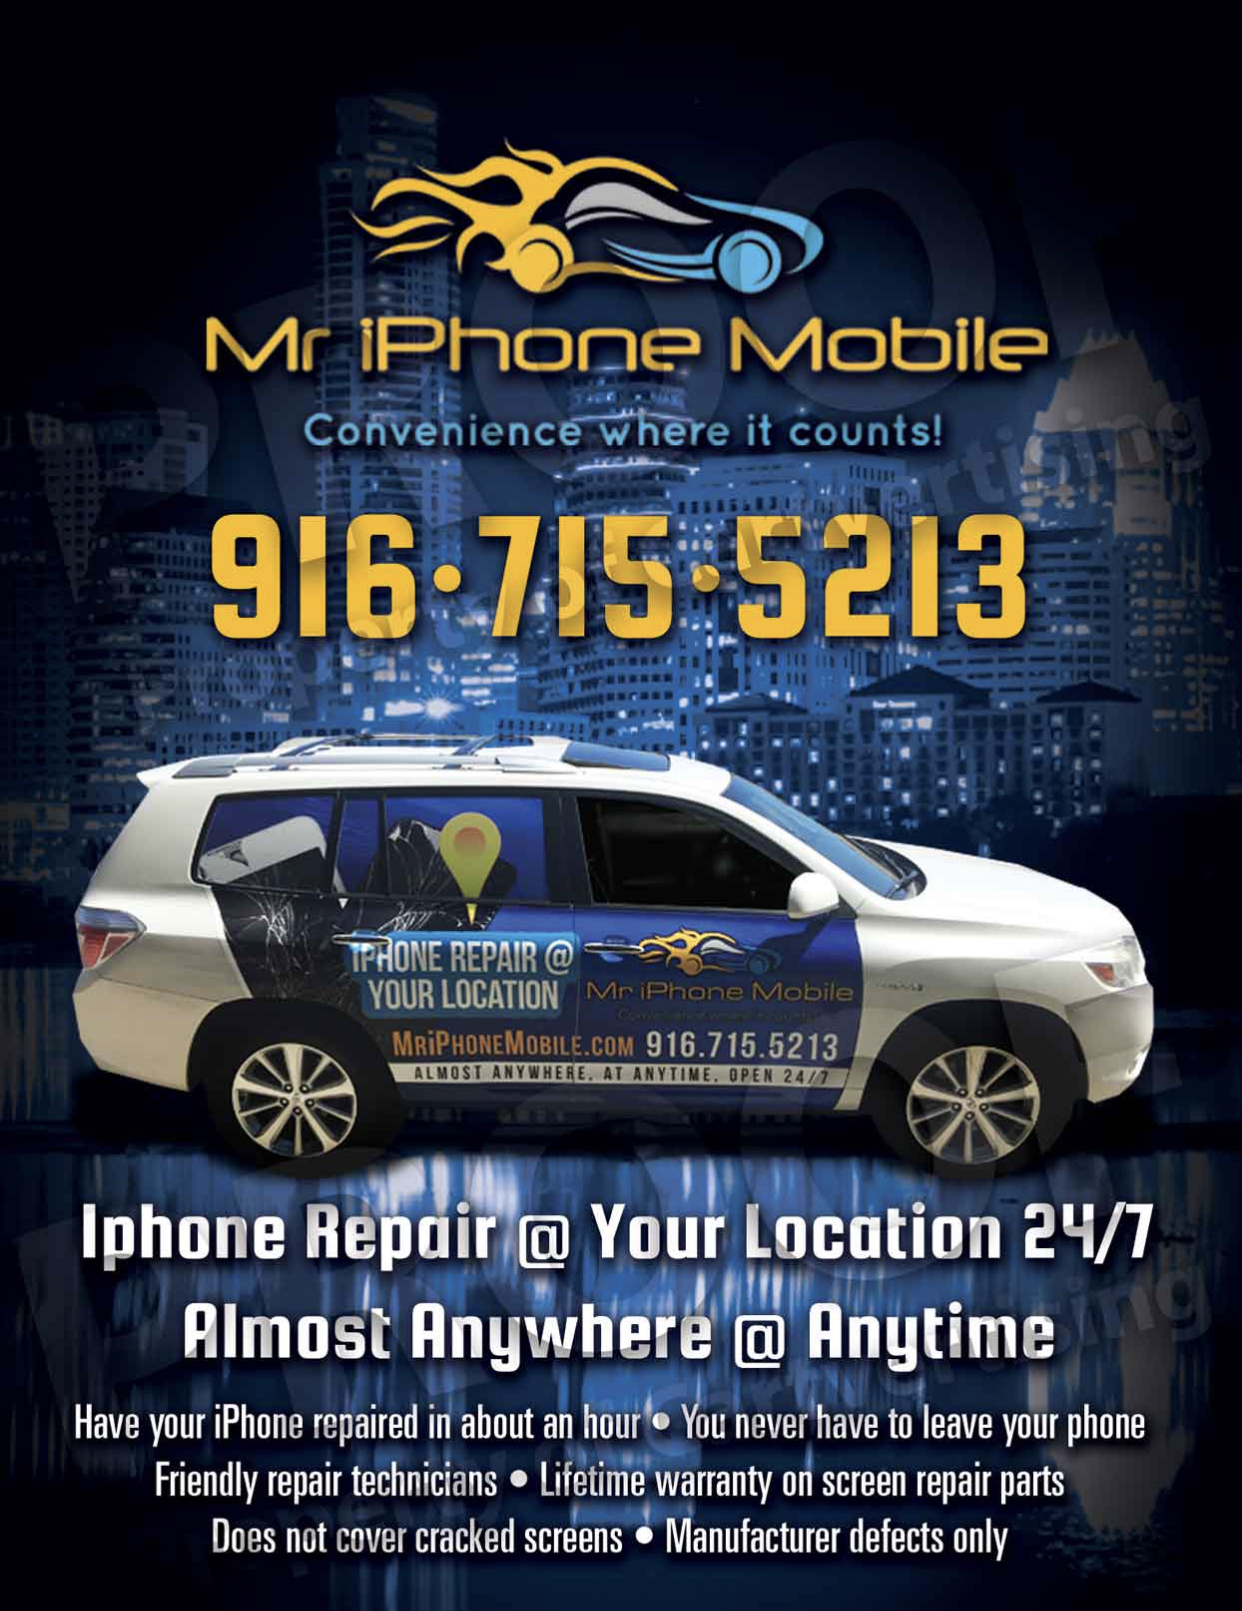 Mobile iPhone Repair SUV